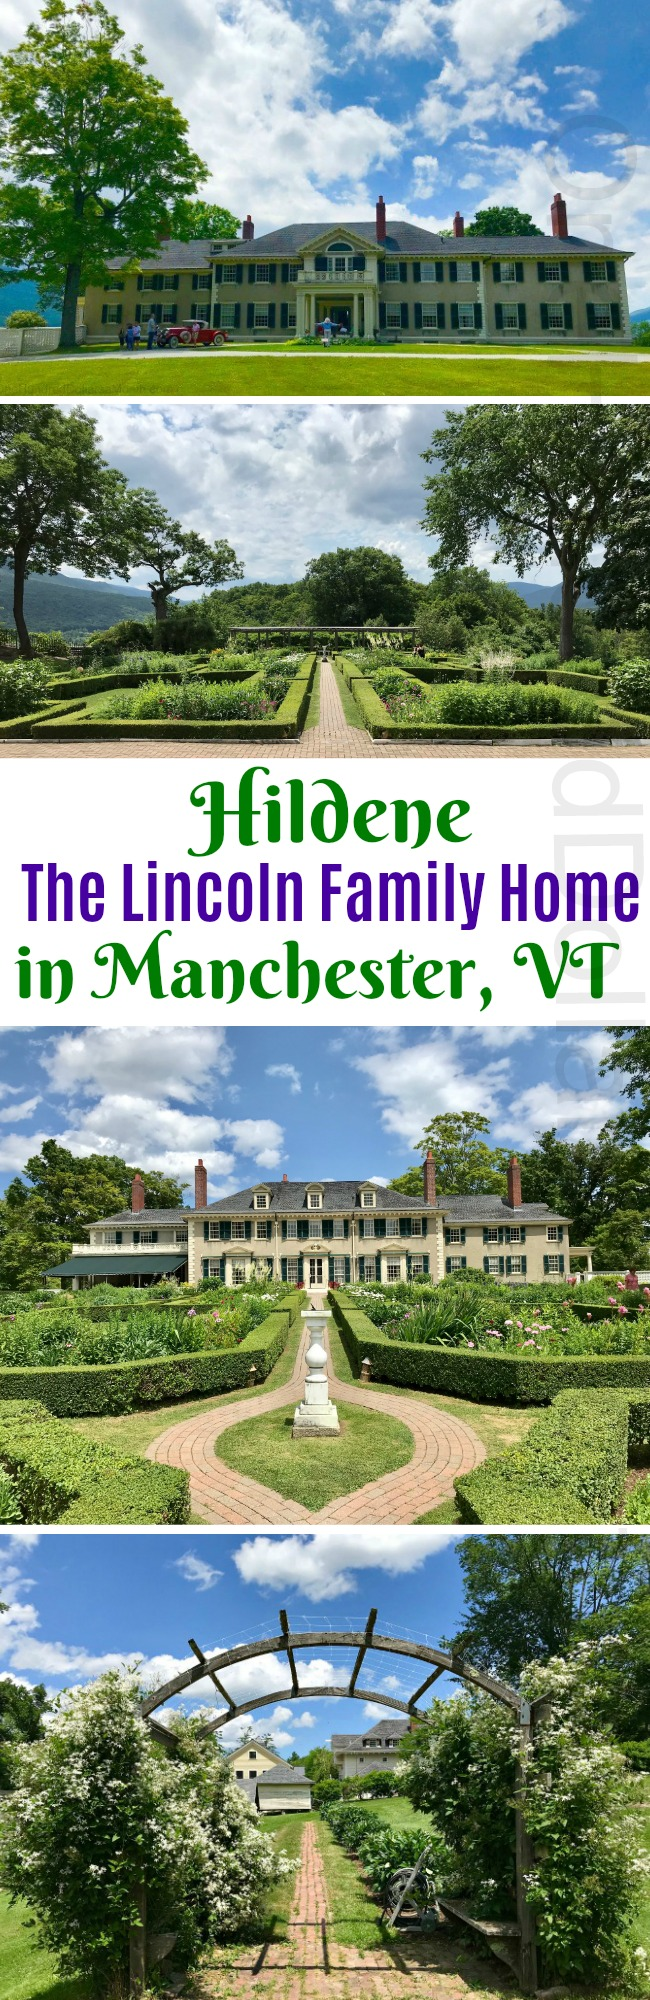 The Gardens at Hildene in Vermont – The Lincoln Family Home